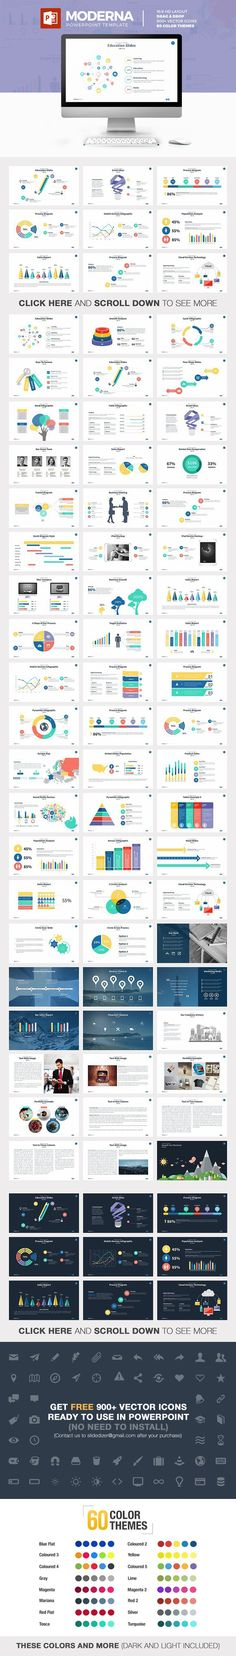 Infographic Ideas infographic proposal template : Annual Report Template